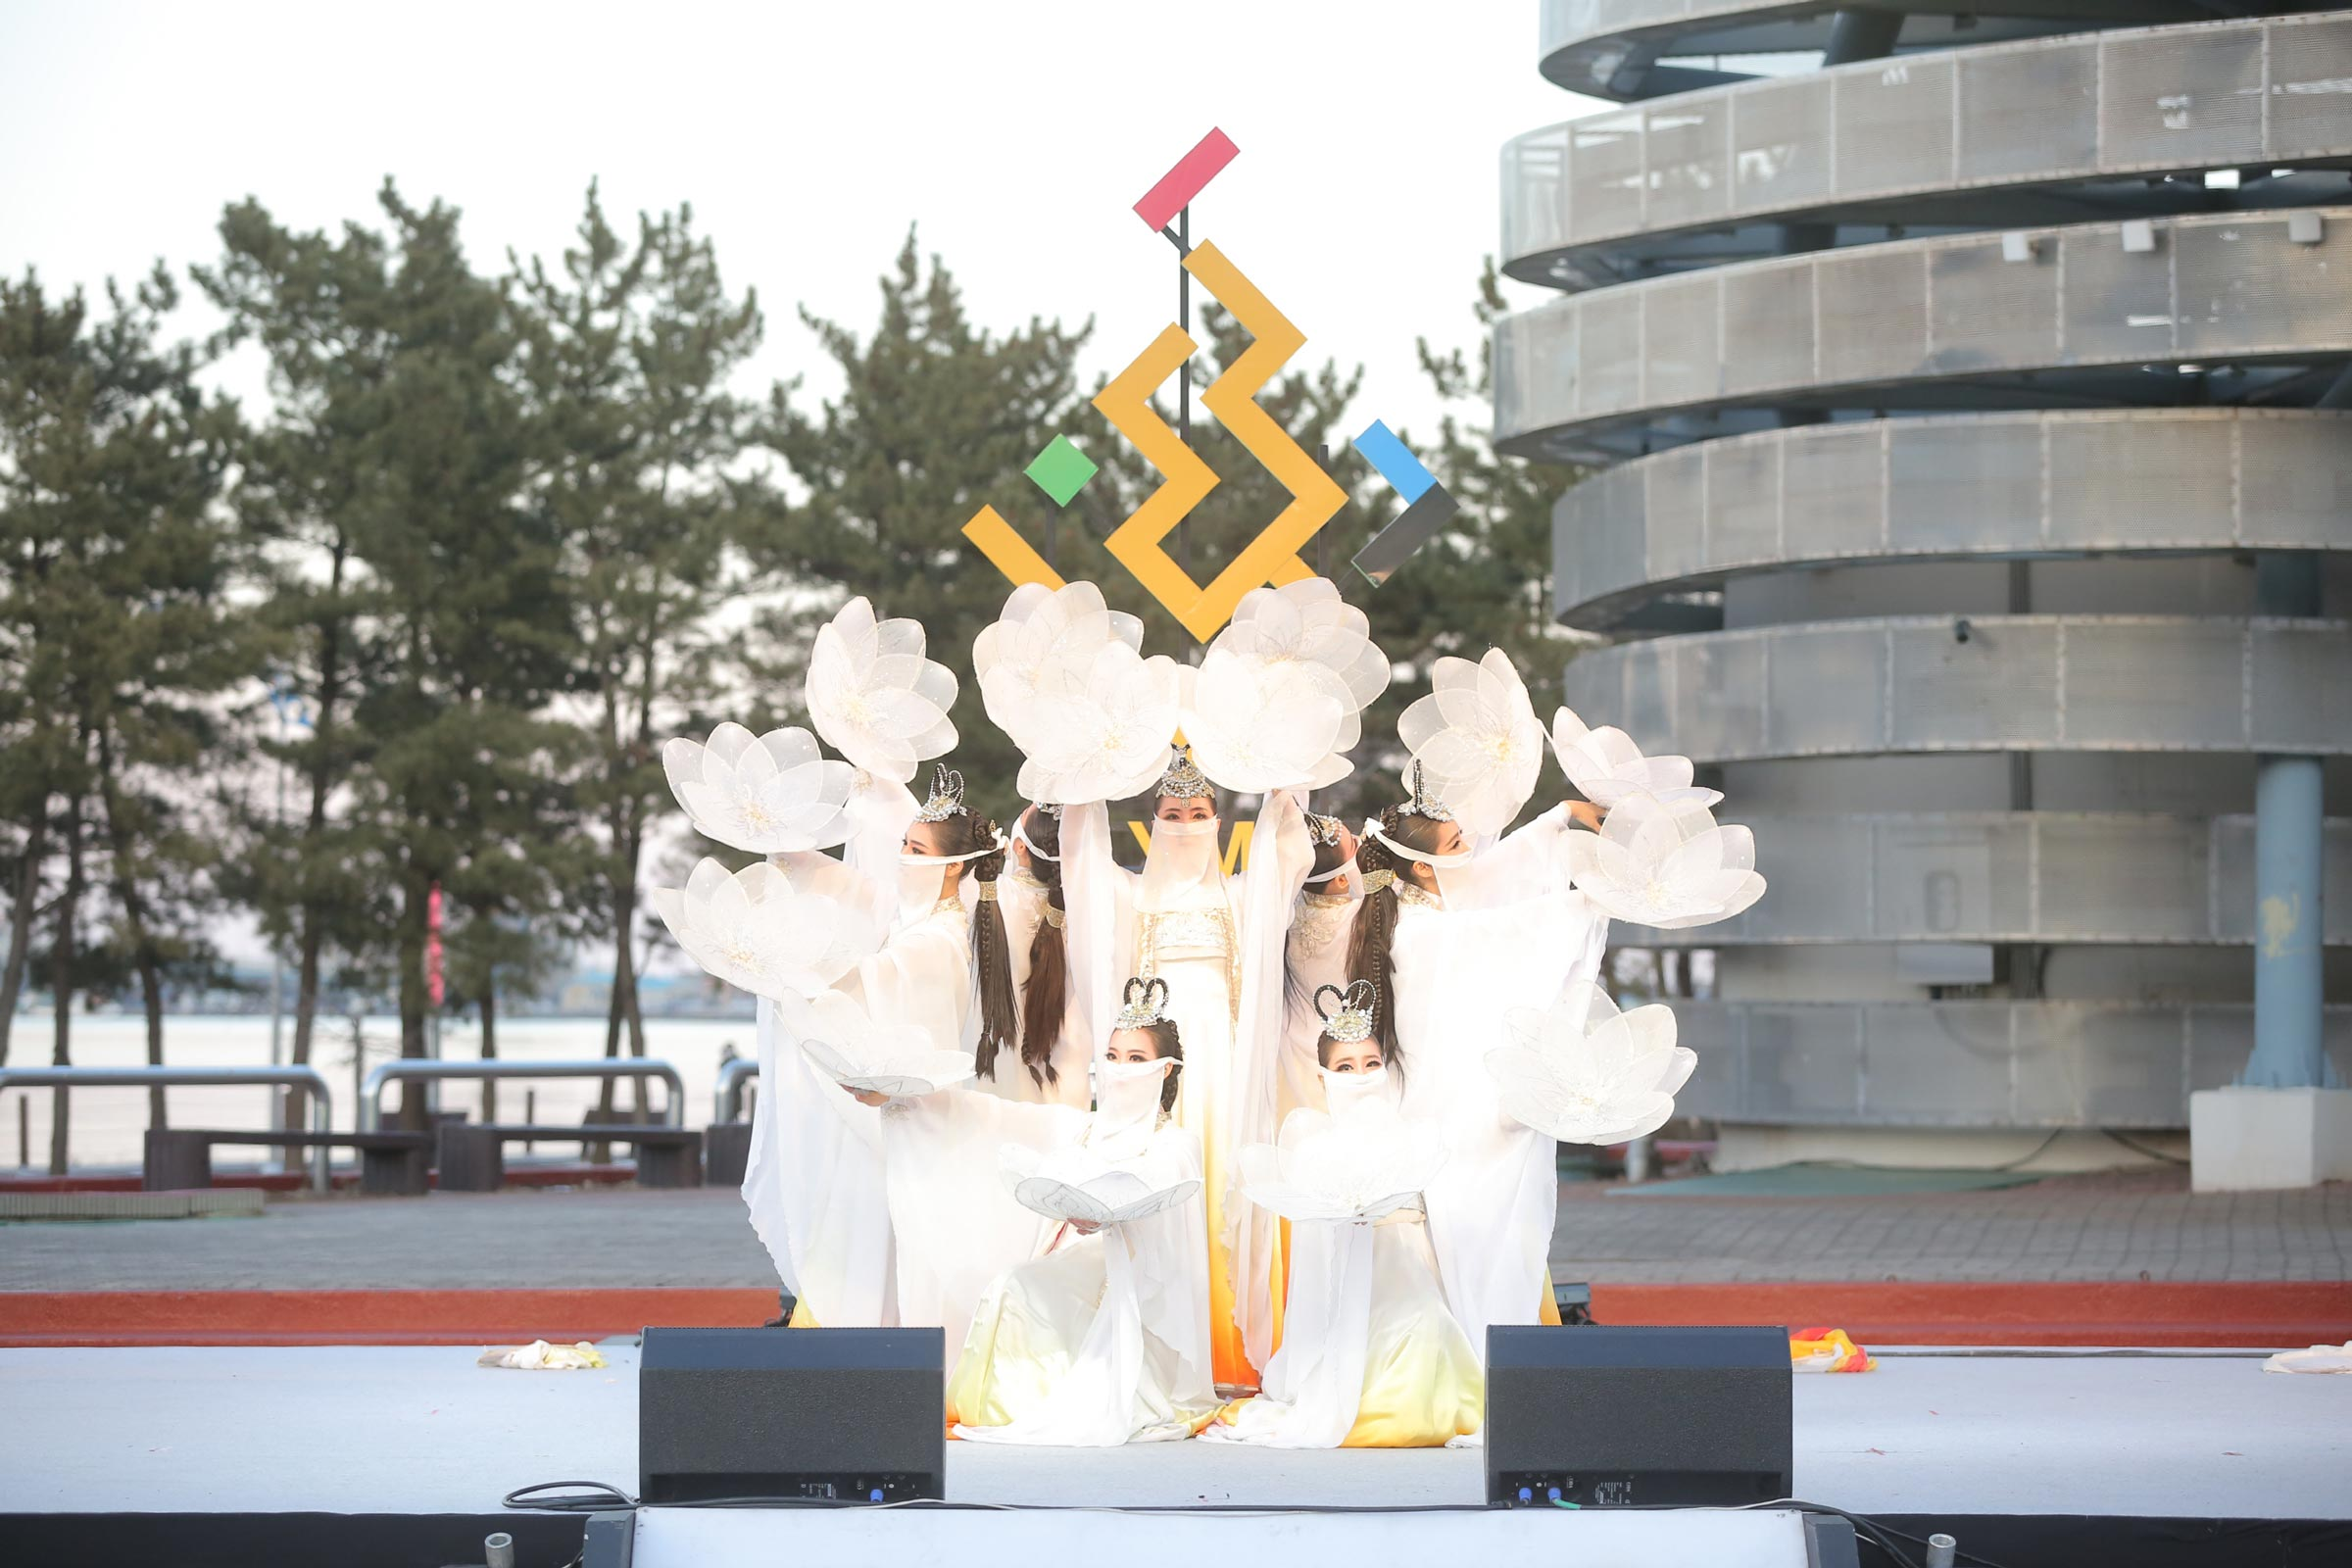 PyeongChang 2018 Olympic Torch Relay - Day 88